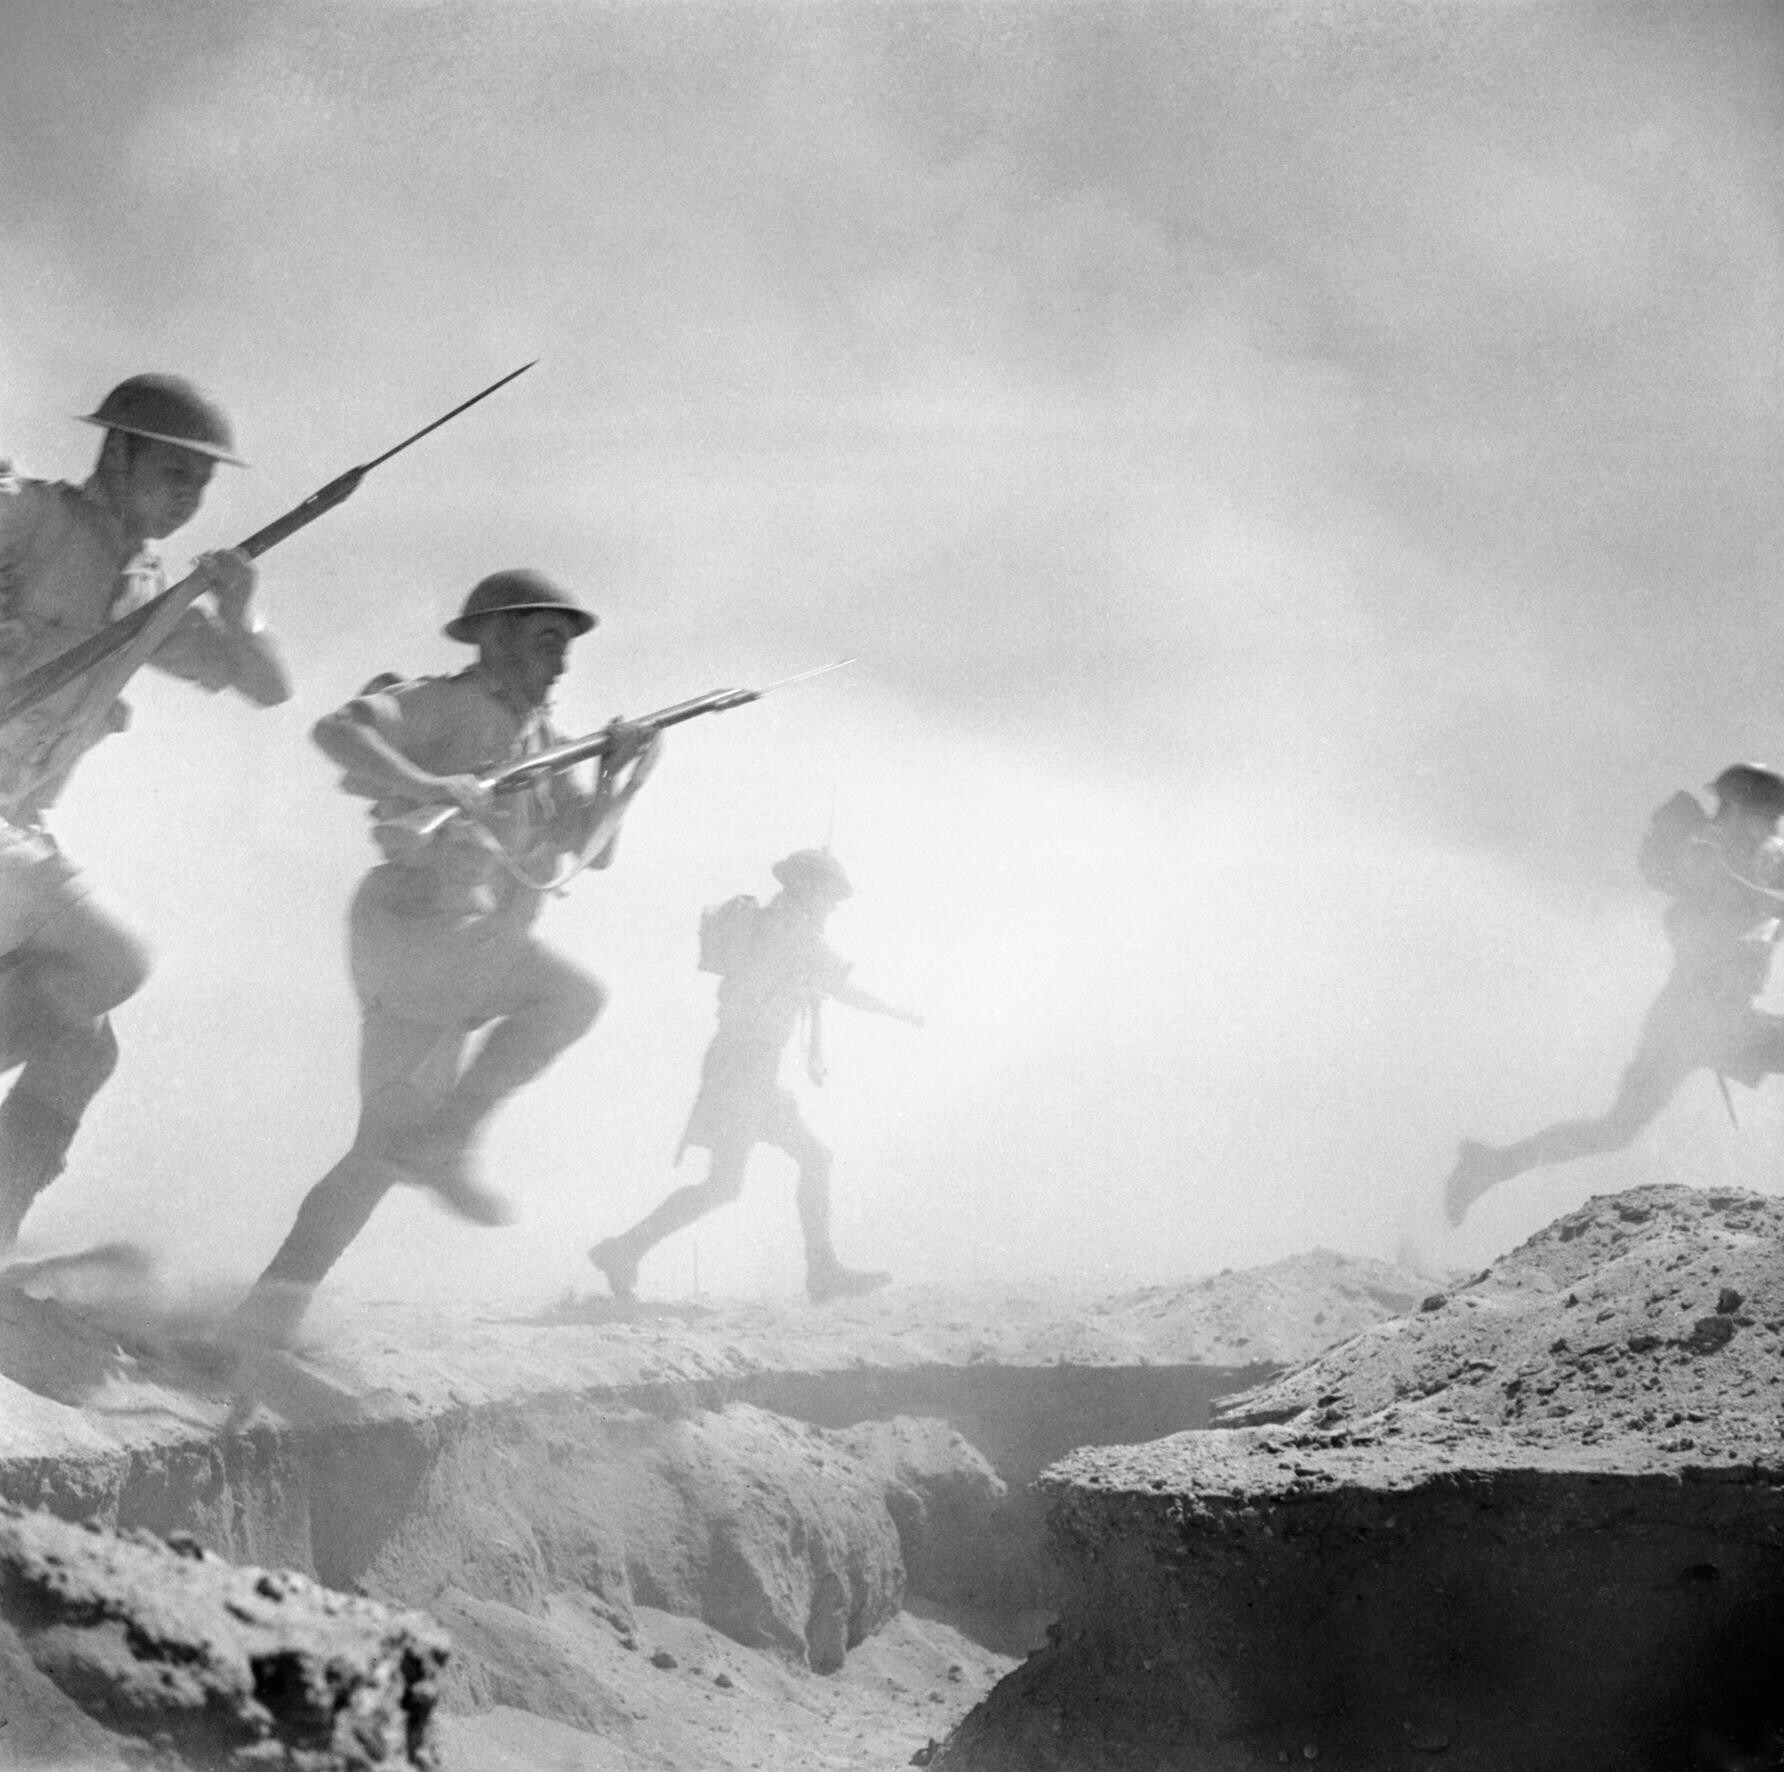 British infantry at El Alamein, 1942